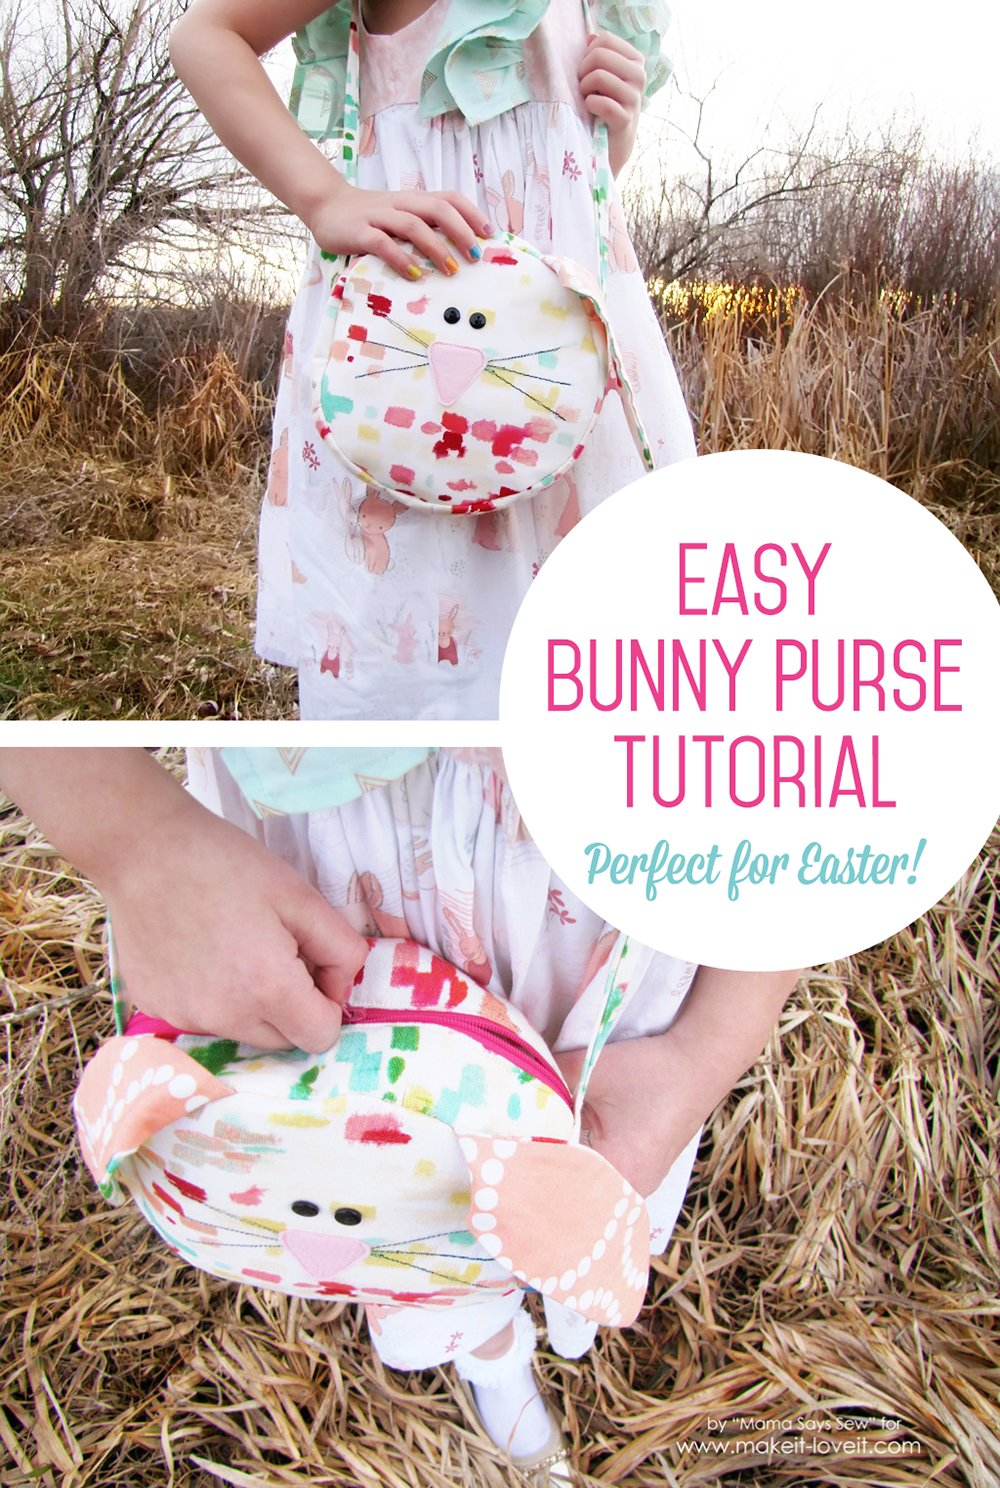 Easy bunny purse tutorial perfect for easter